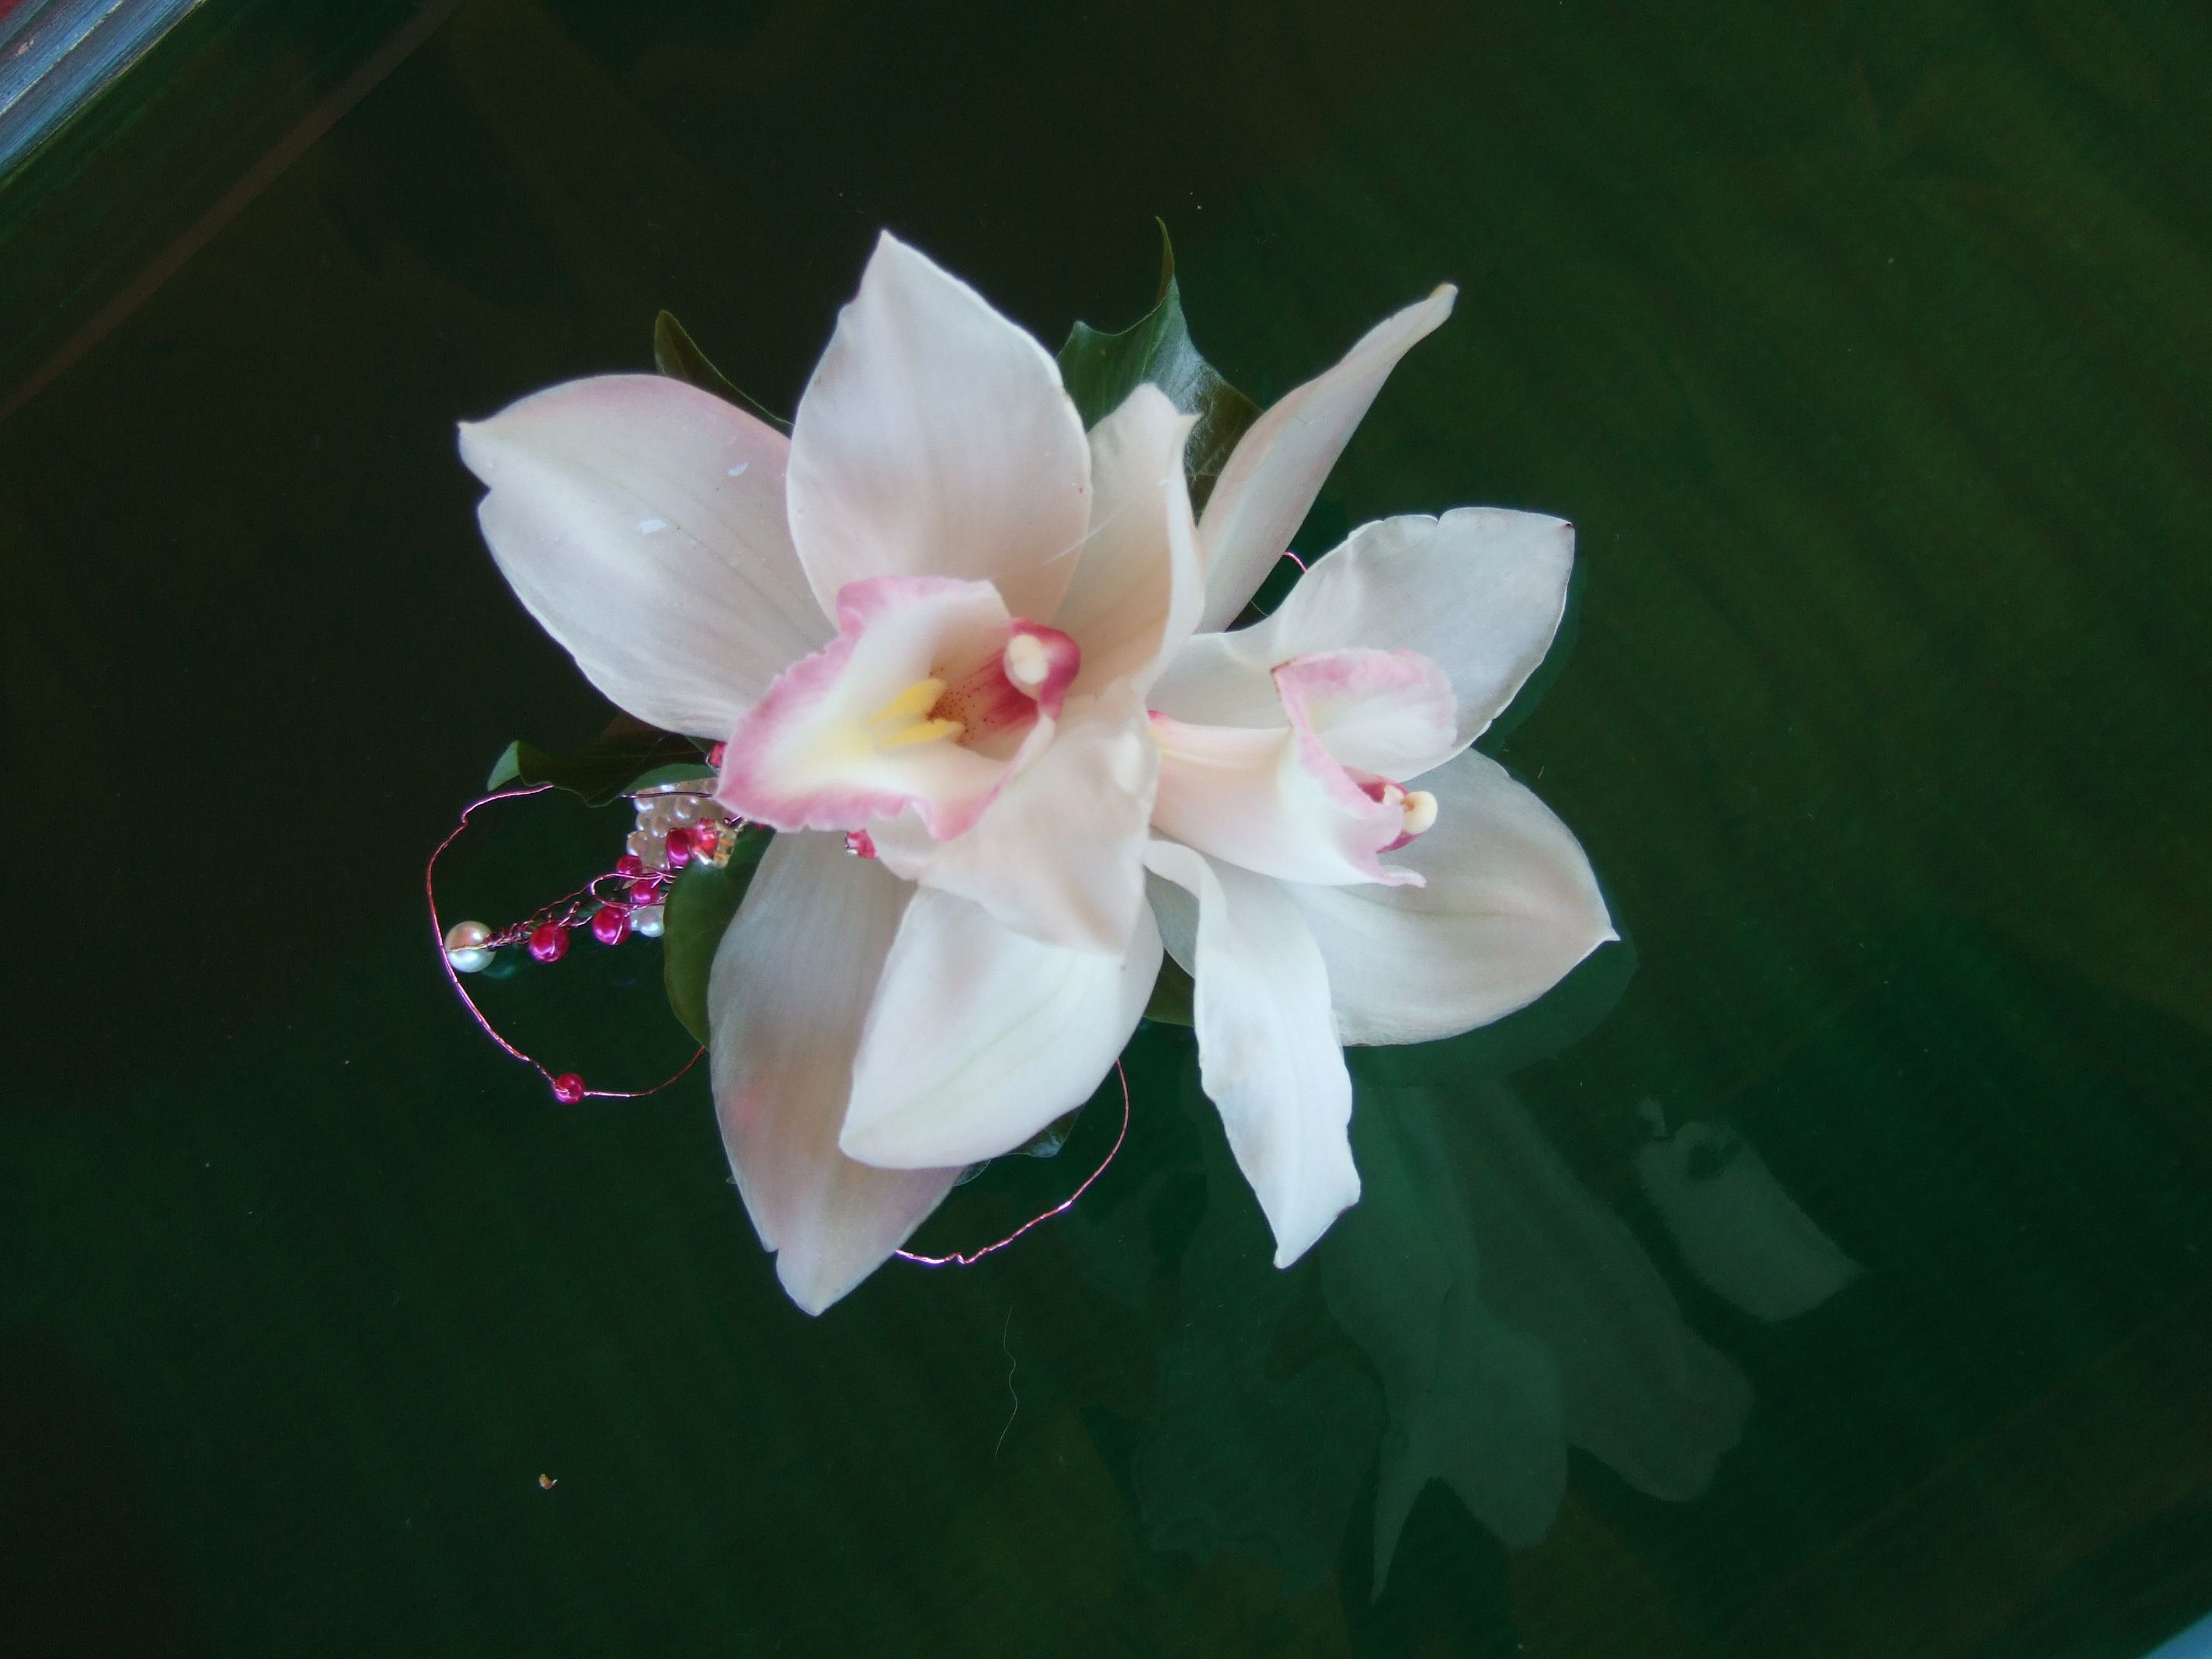 Beautiful white and pink cymbidium orchid wrist corsage finished off with pink wire work and pearl beads.